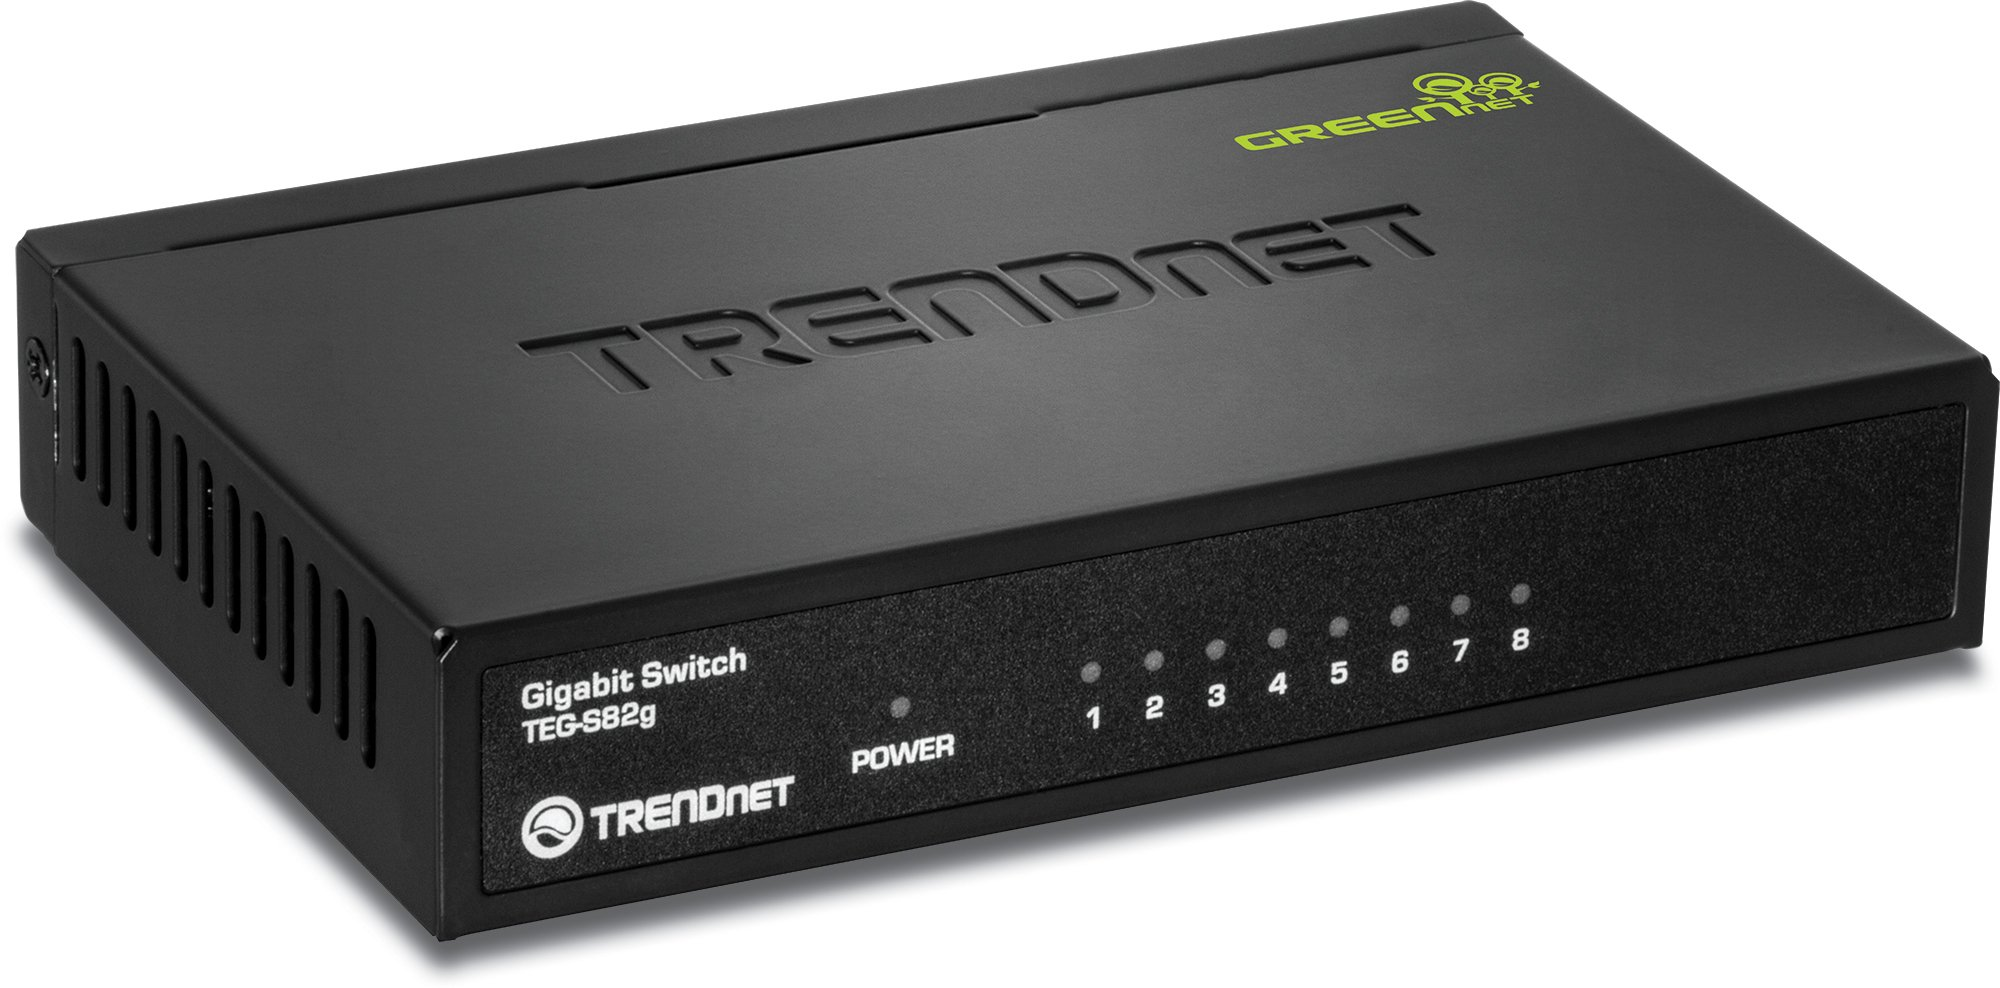 TRENDnet 8-Port Gigabit GREENnet Switch, 10/100/1000 Mbps, 16 Gbps Switching Capacity, Metal Housing, Plug & Play, Lifetime Protection,TEG-S82G